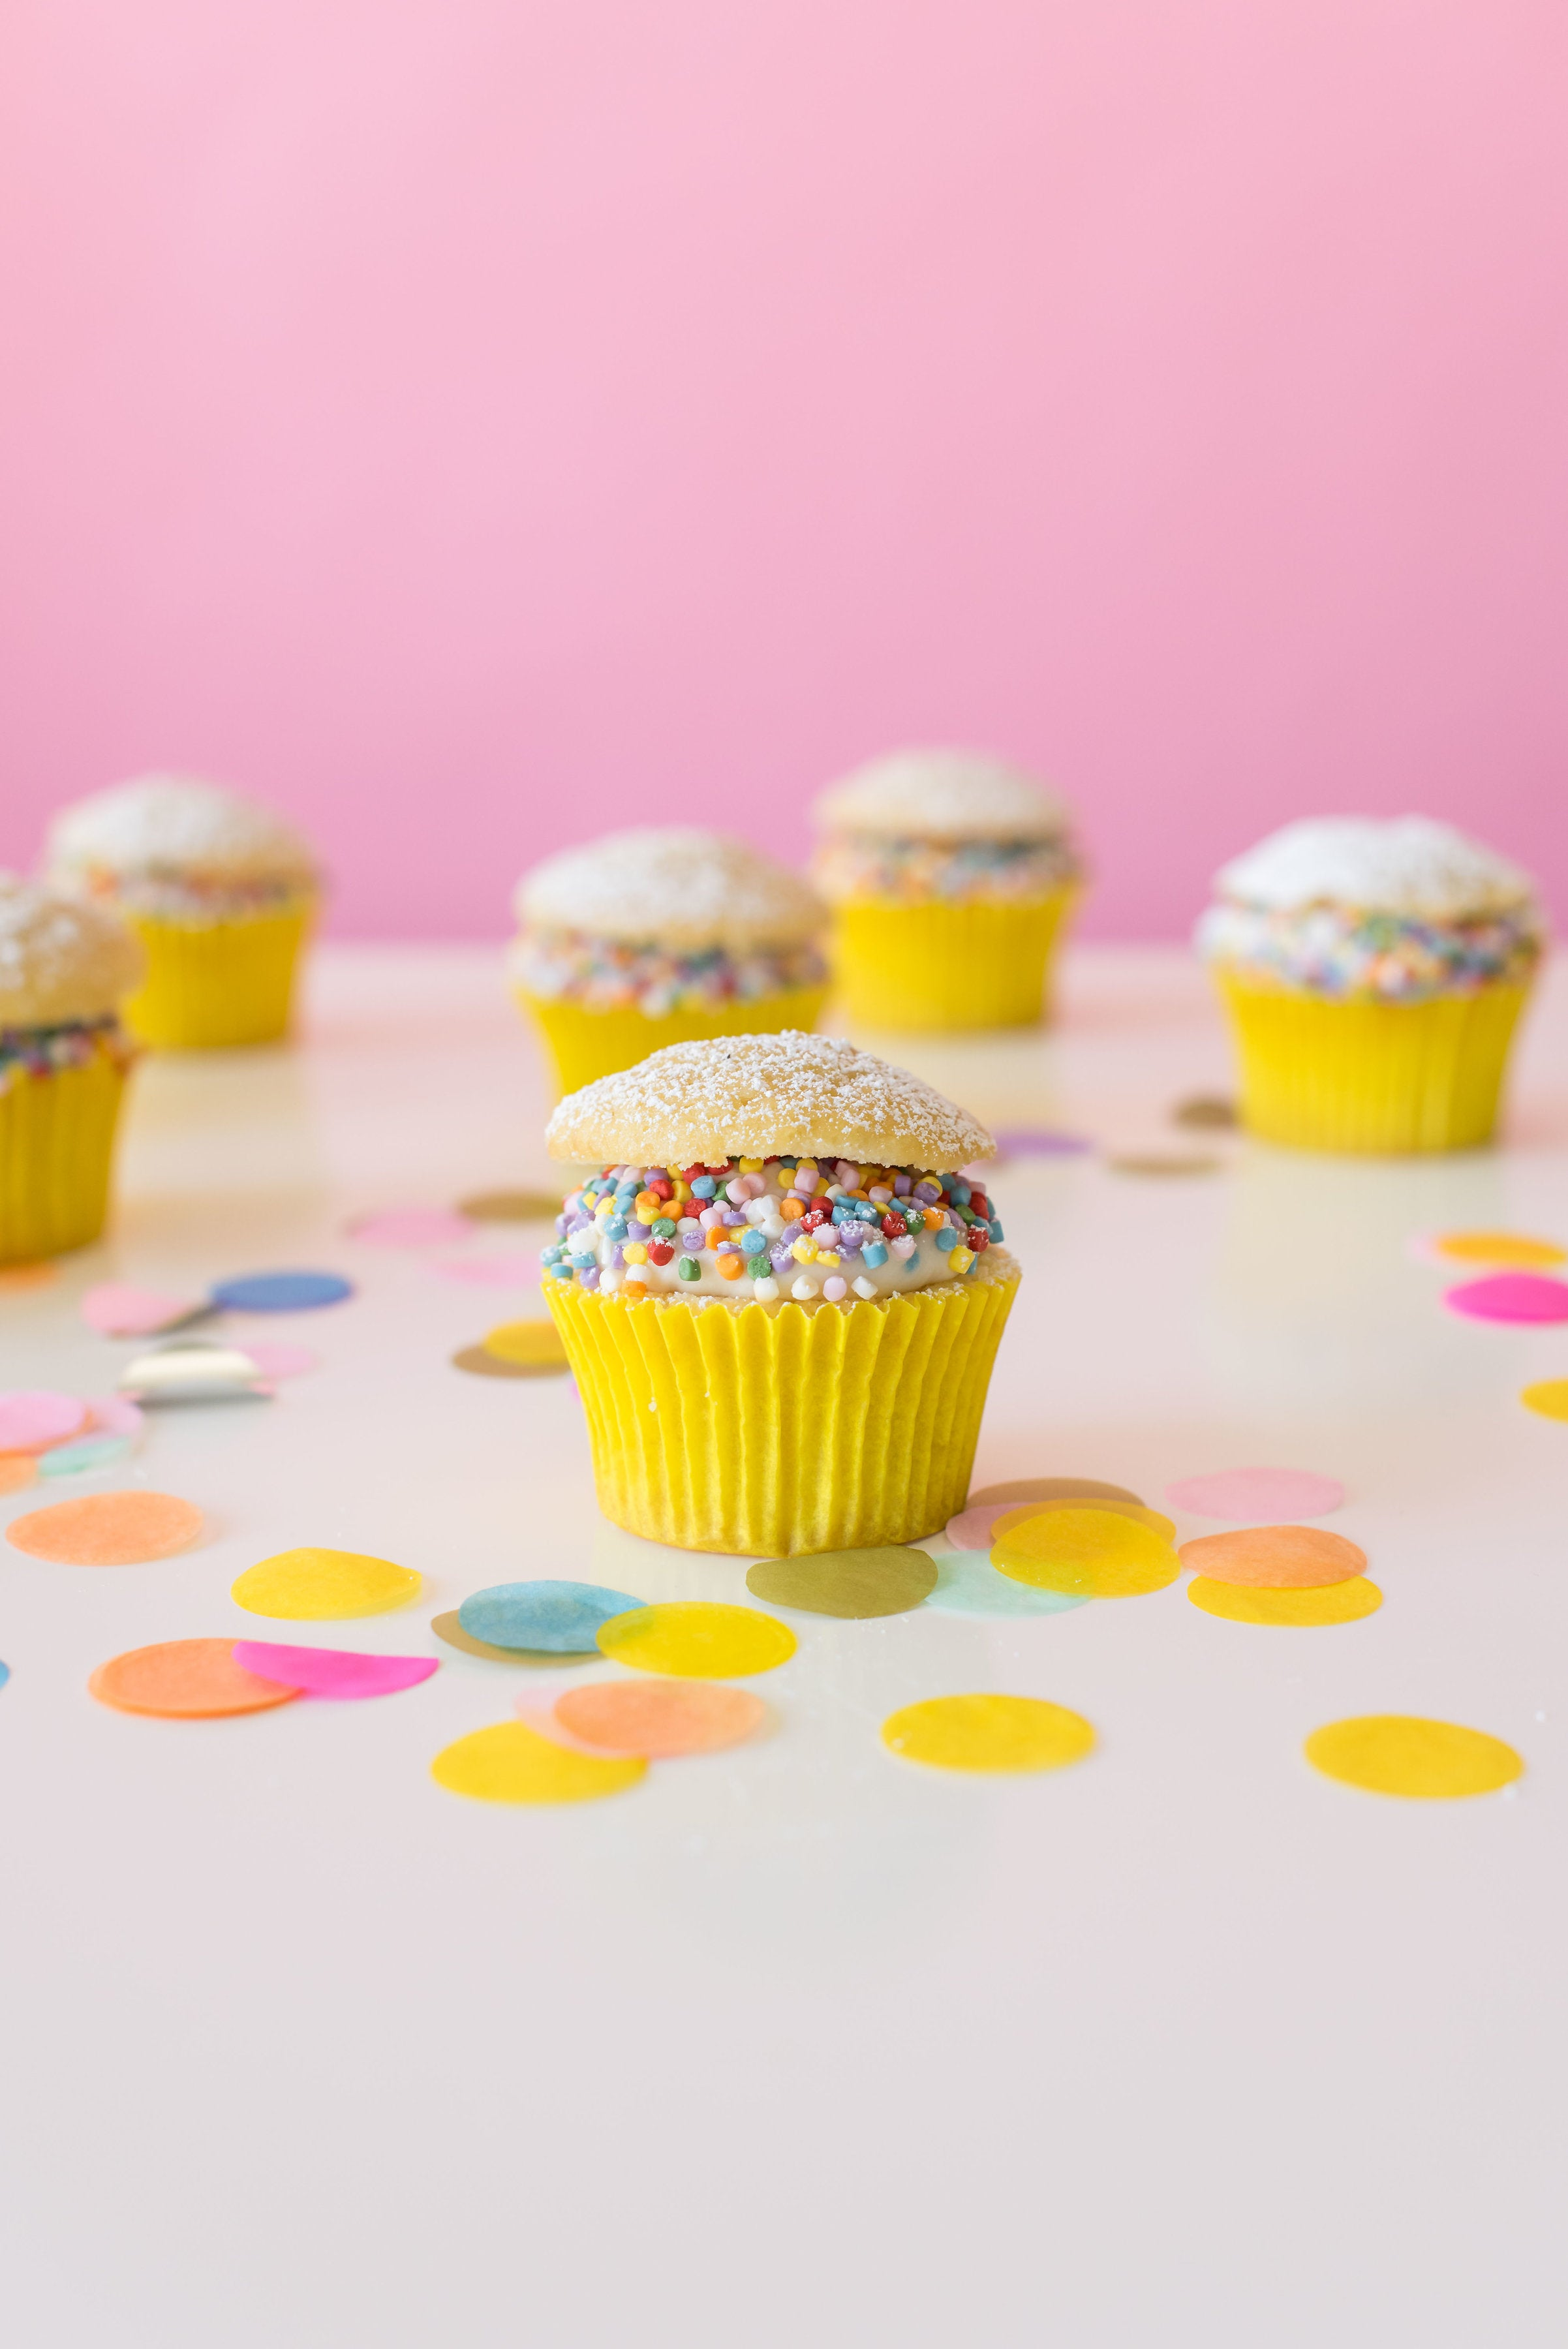 Image of side of six Miss Jones Baking Co Confetti Pop Cream Puff Cupcakes surrounded by confetti